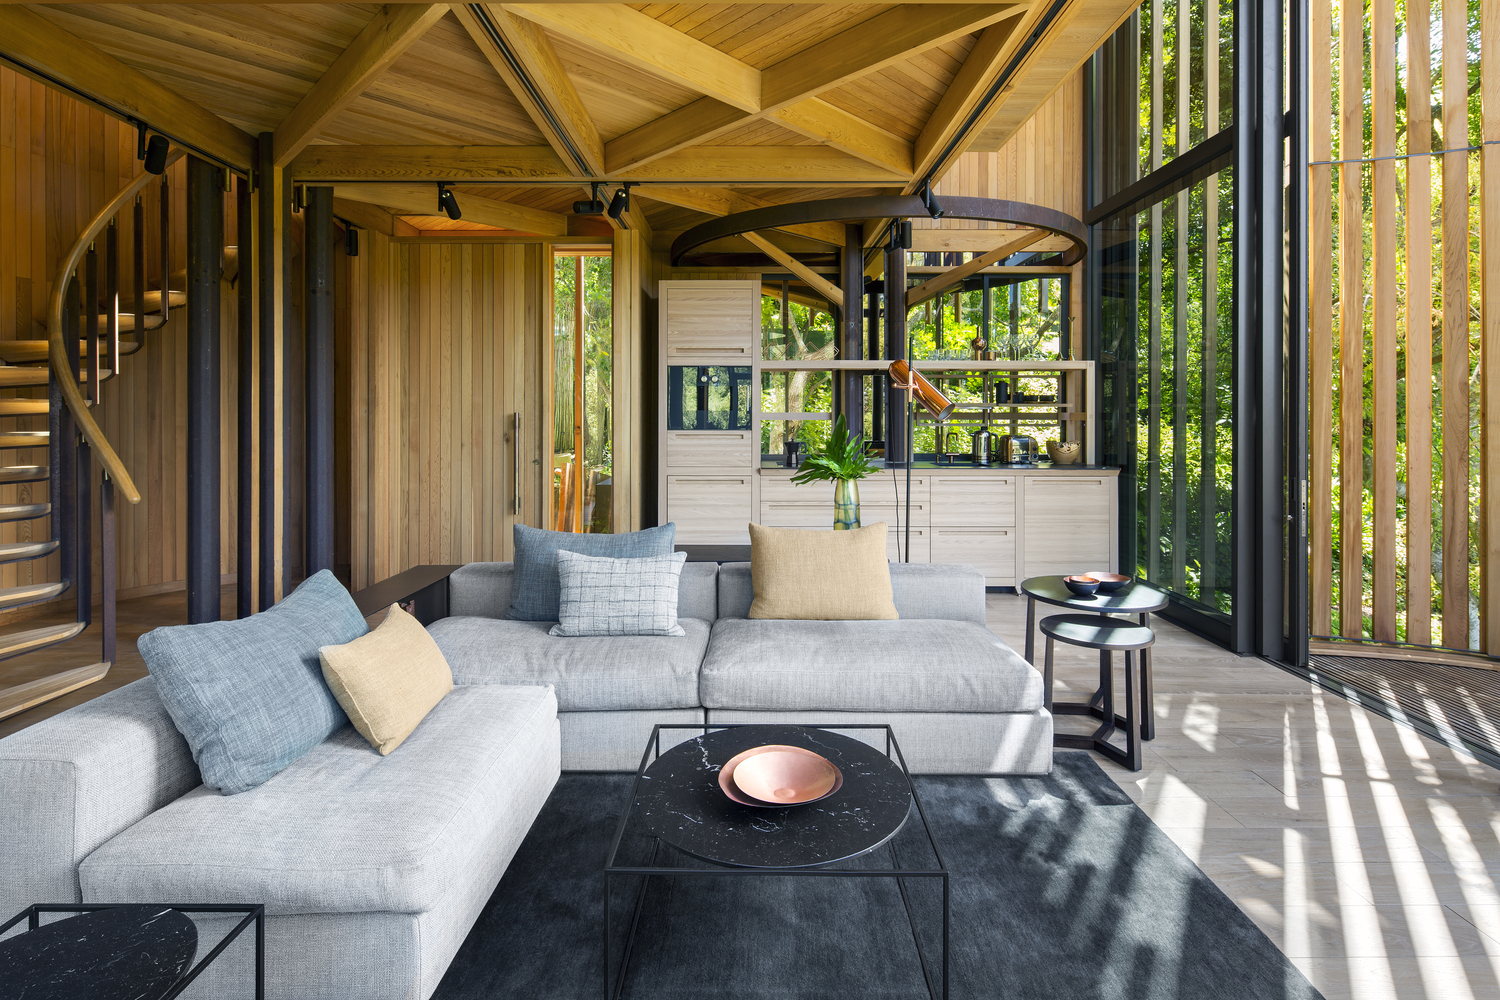 Gallery of Tree House / Malan Vorster Architecture Interior Design on wood slides, roller bearing slides, tree houses for adults, park slides, easter slides, office slides, tree houses for girls, tree themed playgrounds,